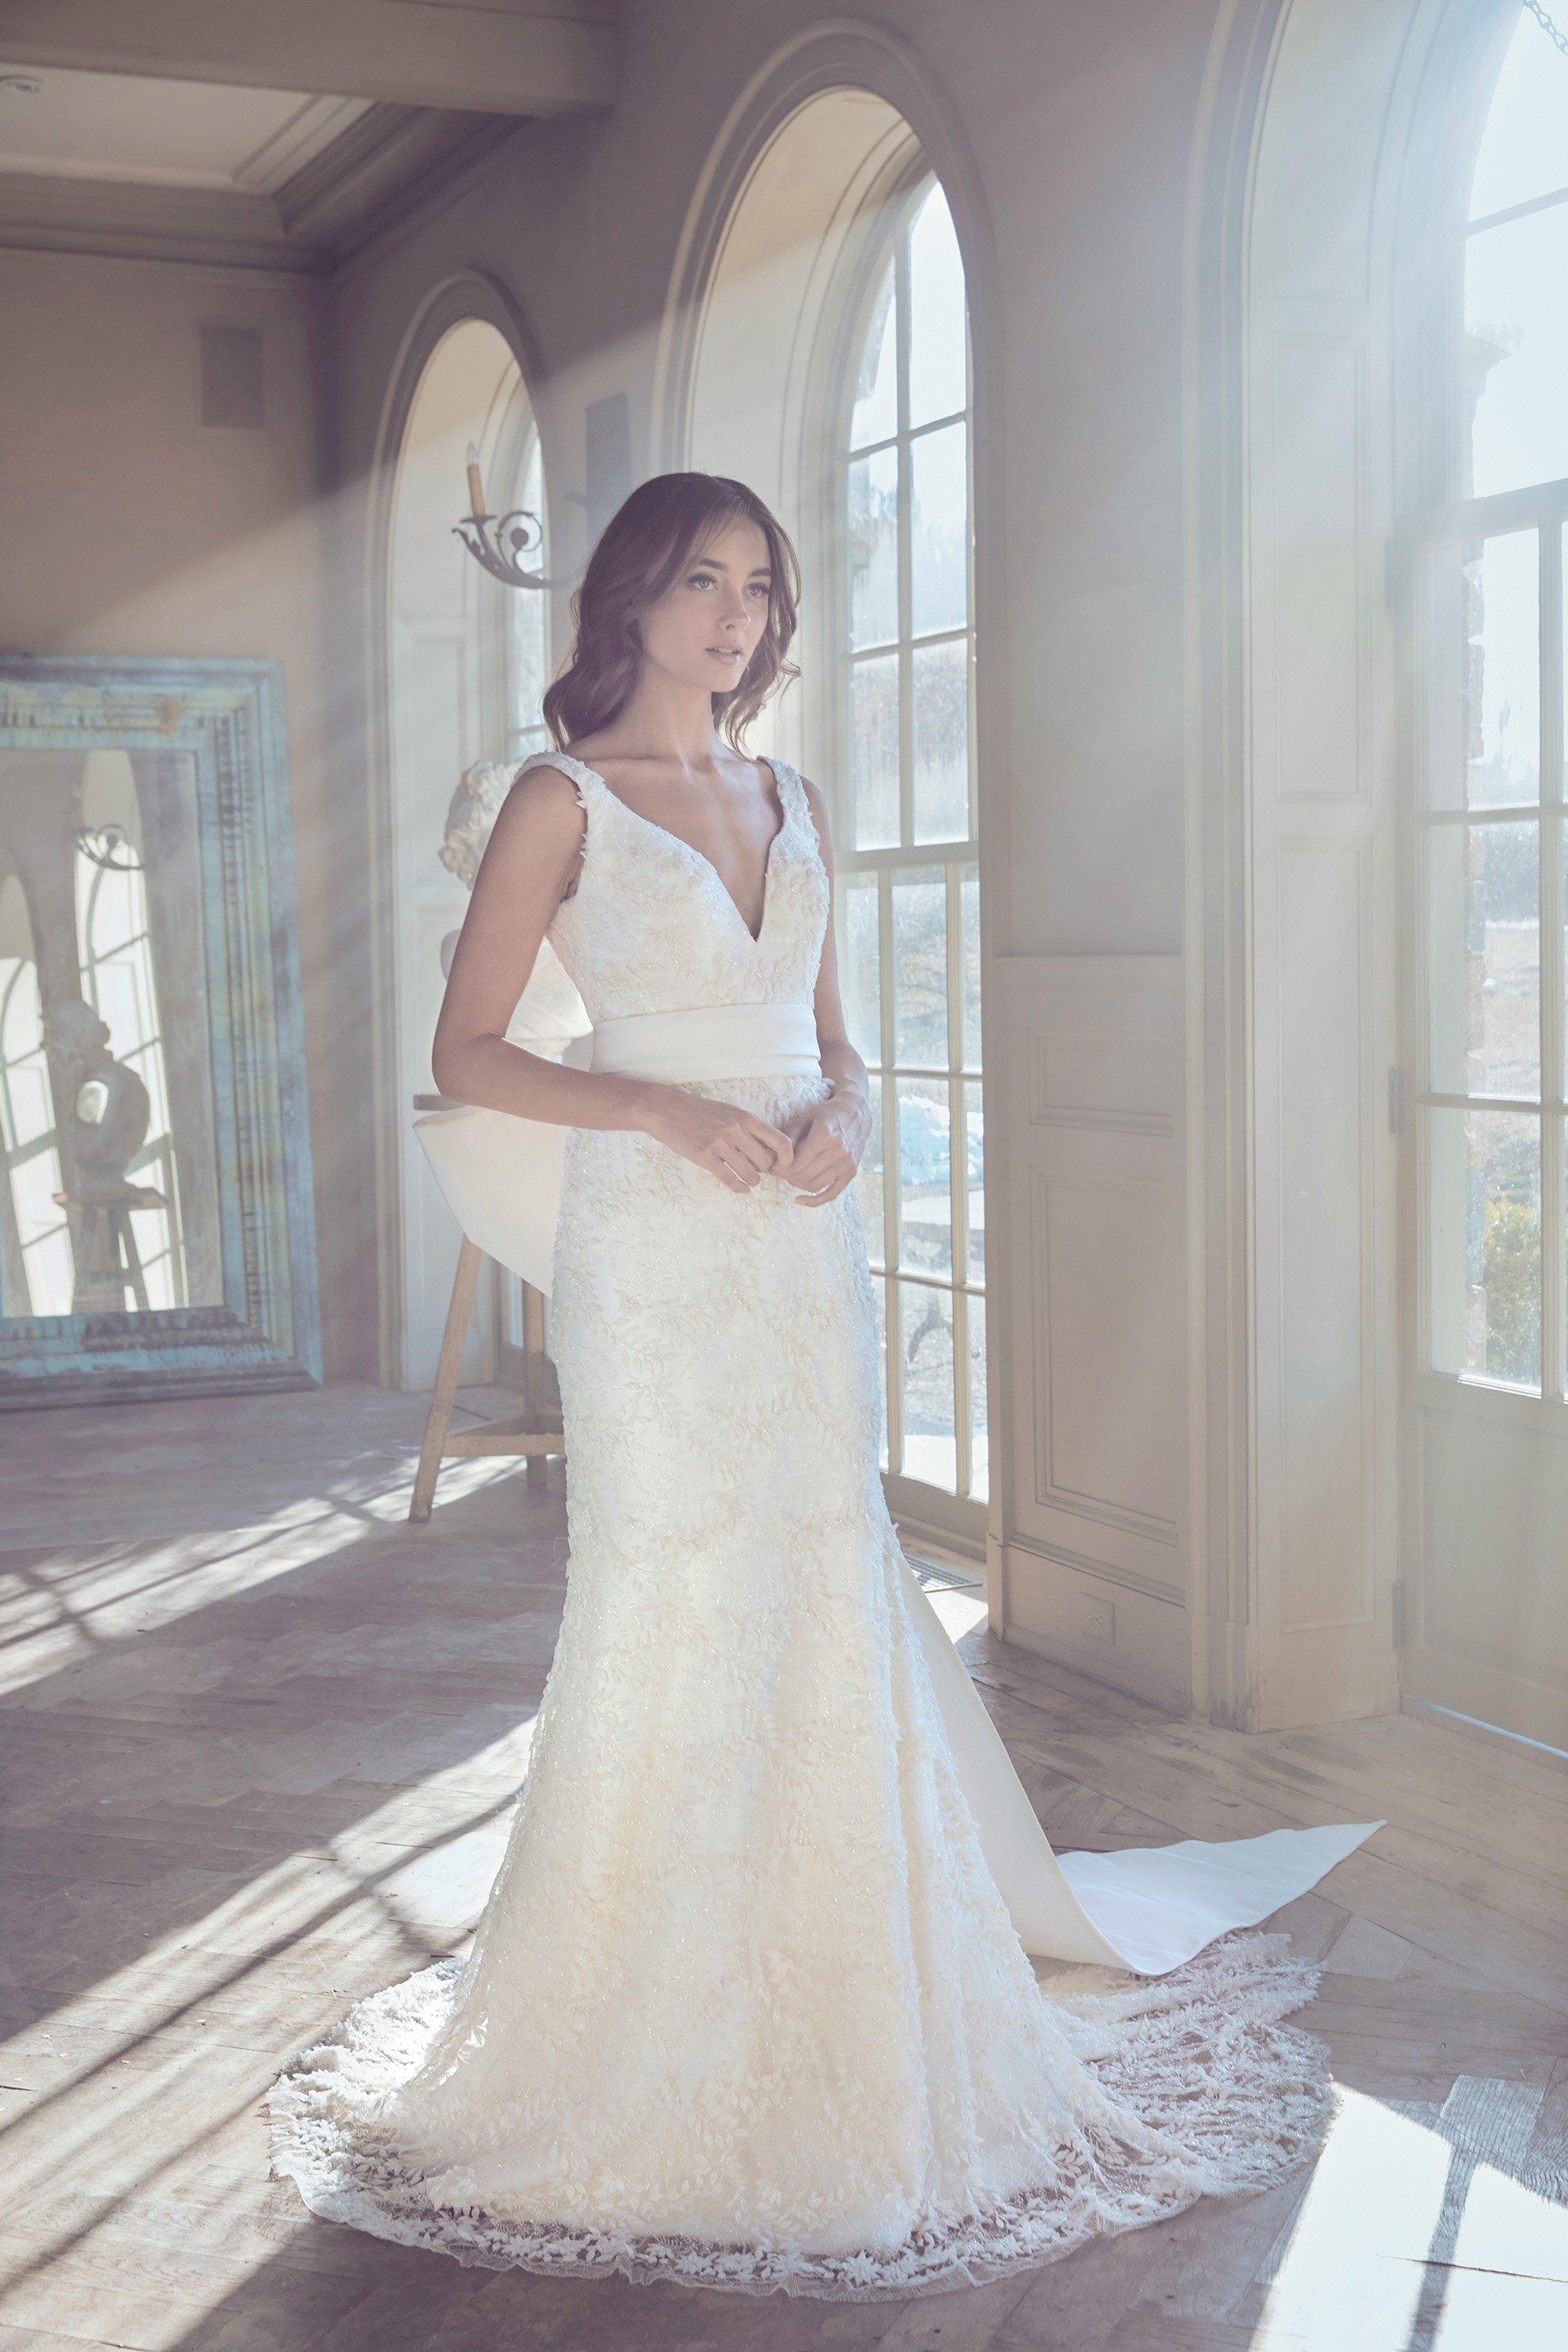 sareh nouri wedding dress spring 2019 v-neck floral lace dress with bow belt